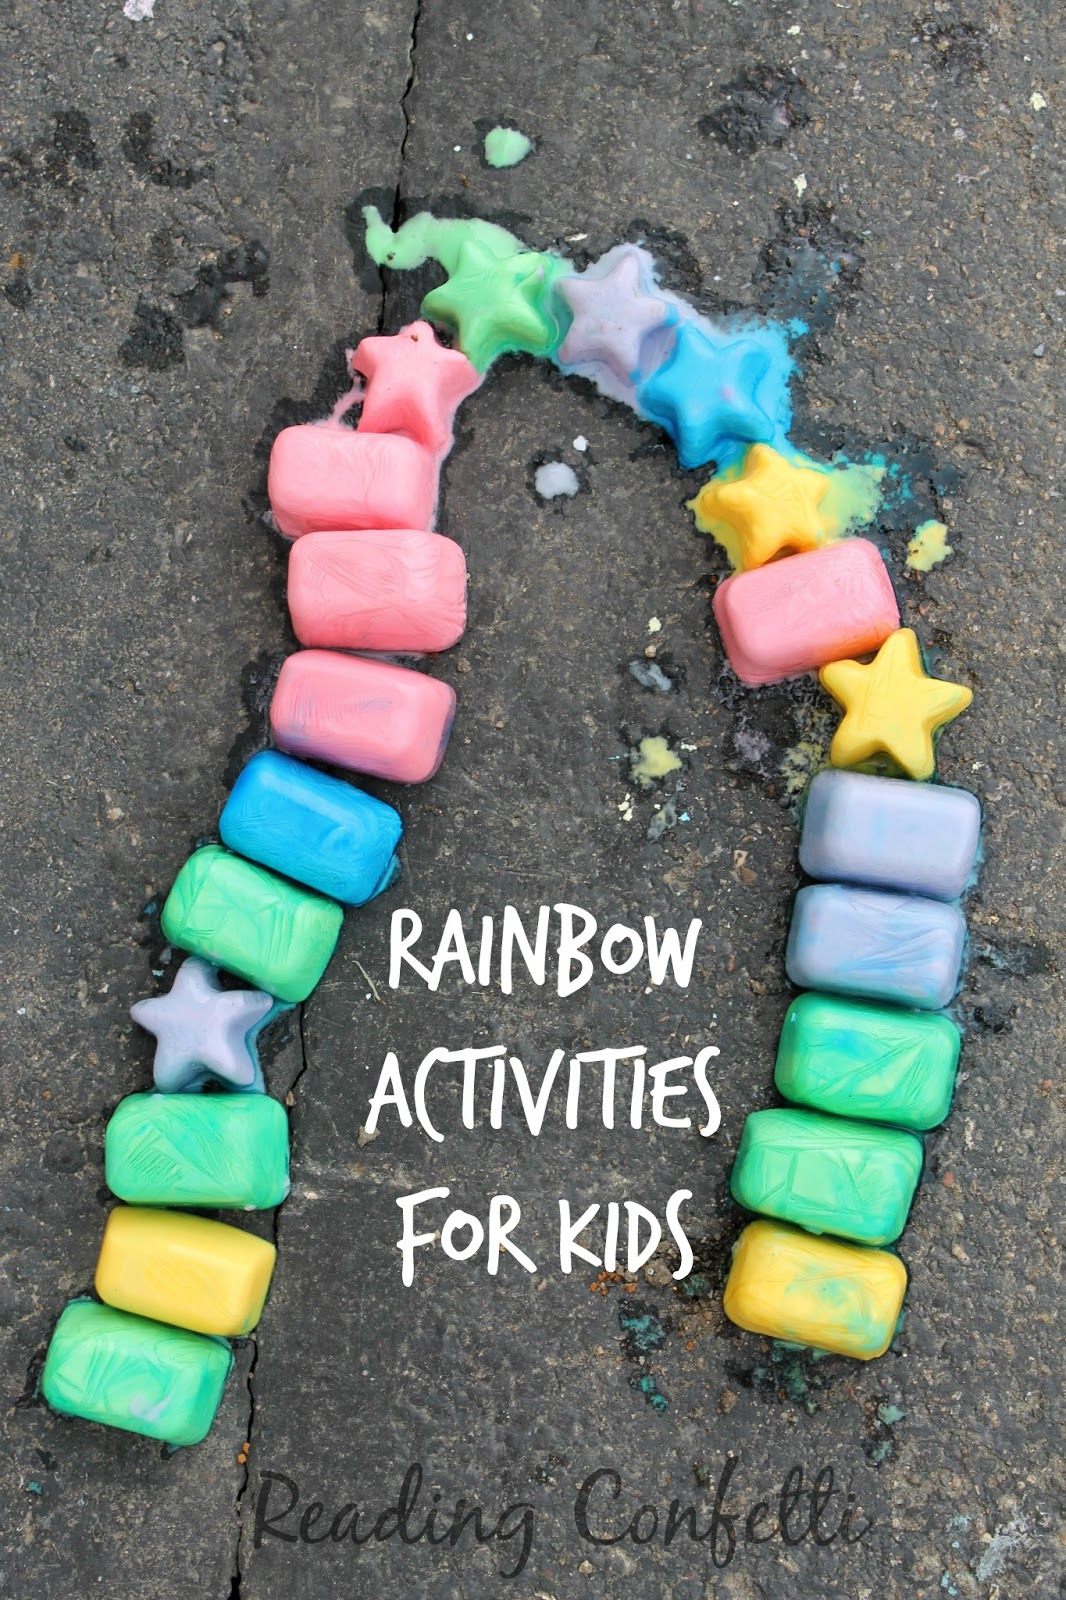 Creative rainbow crafts and activities for kids